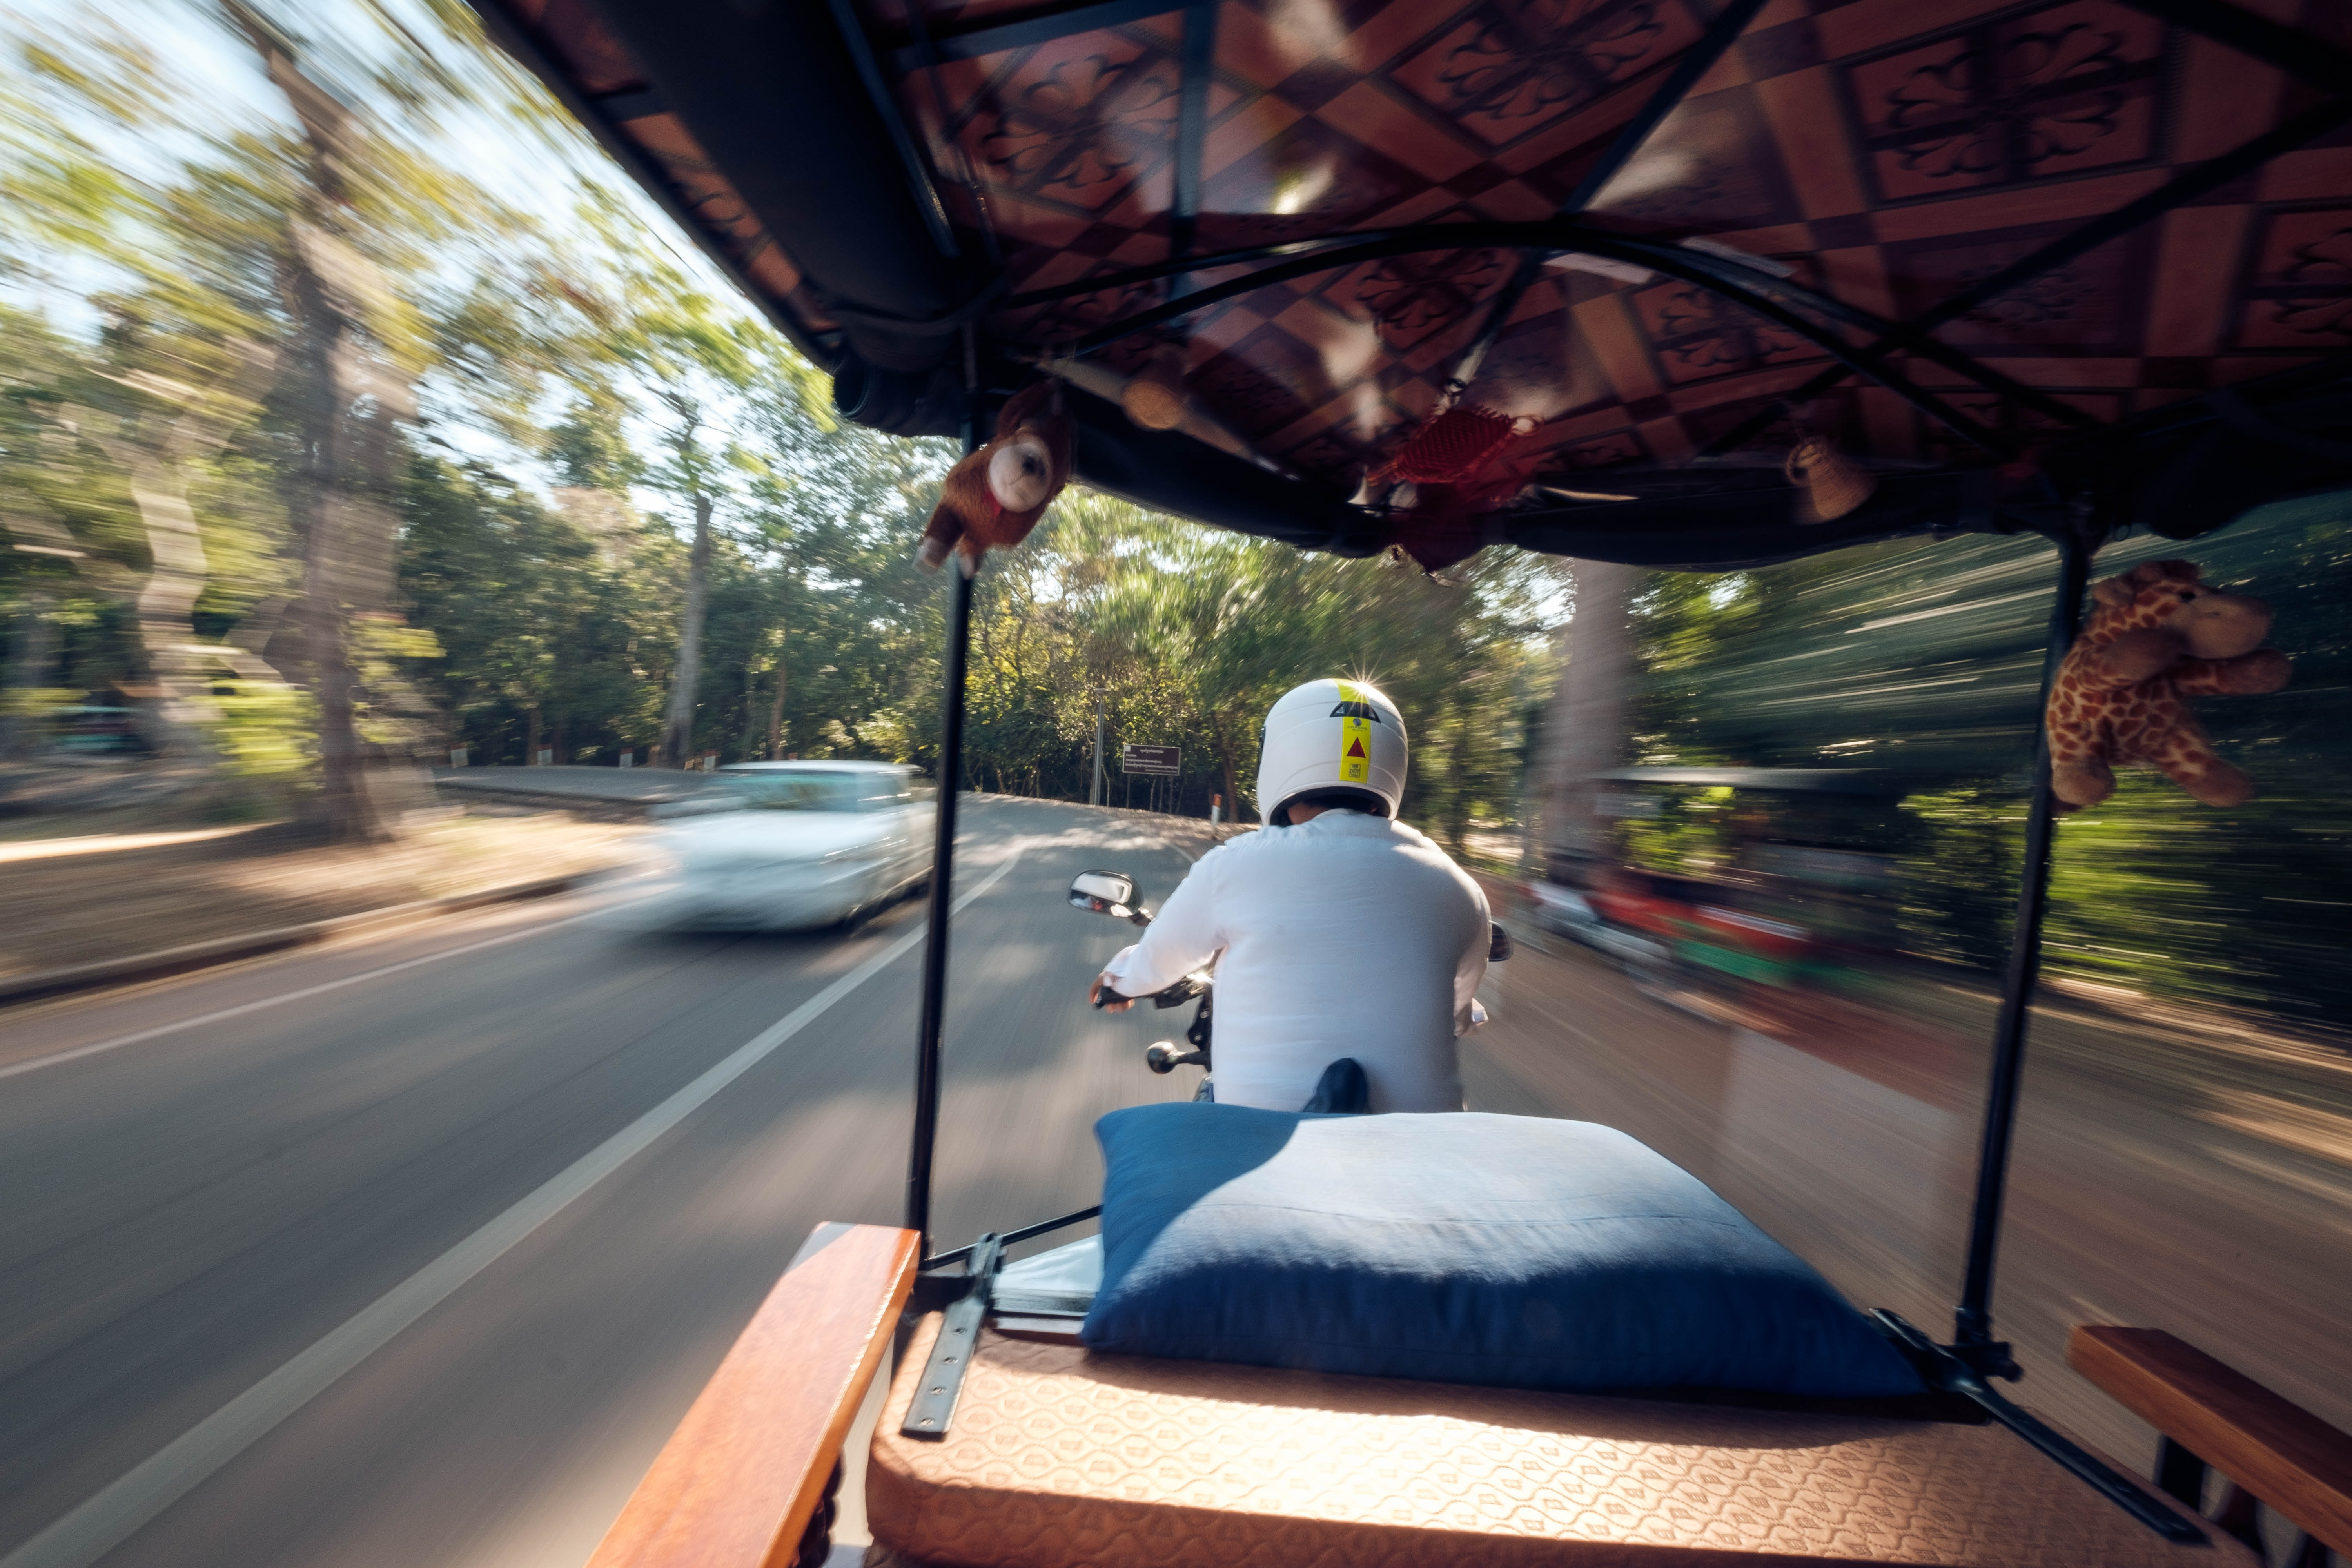 man riding auto rickshaw during daytime